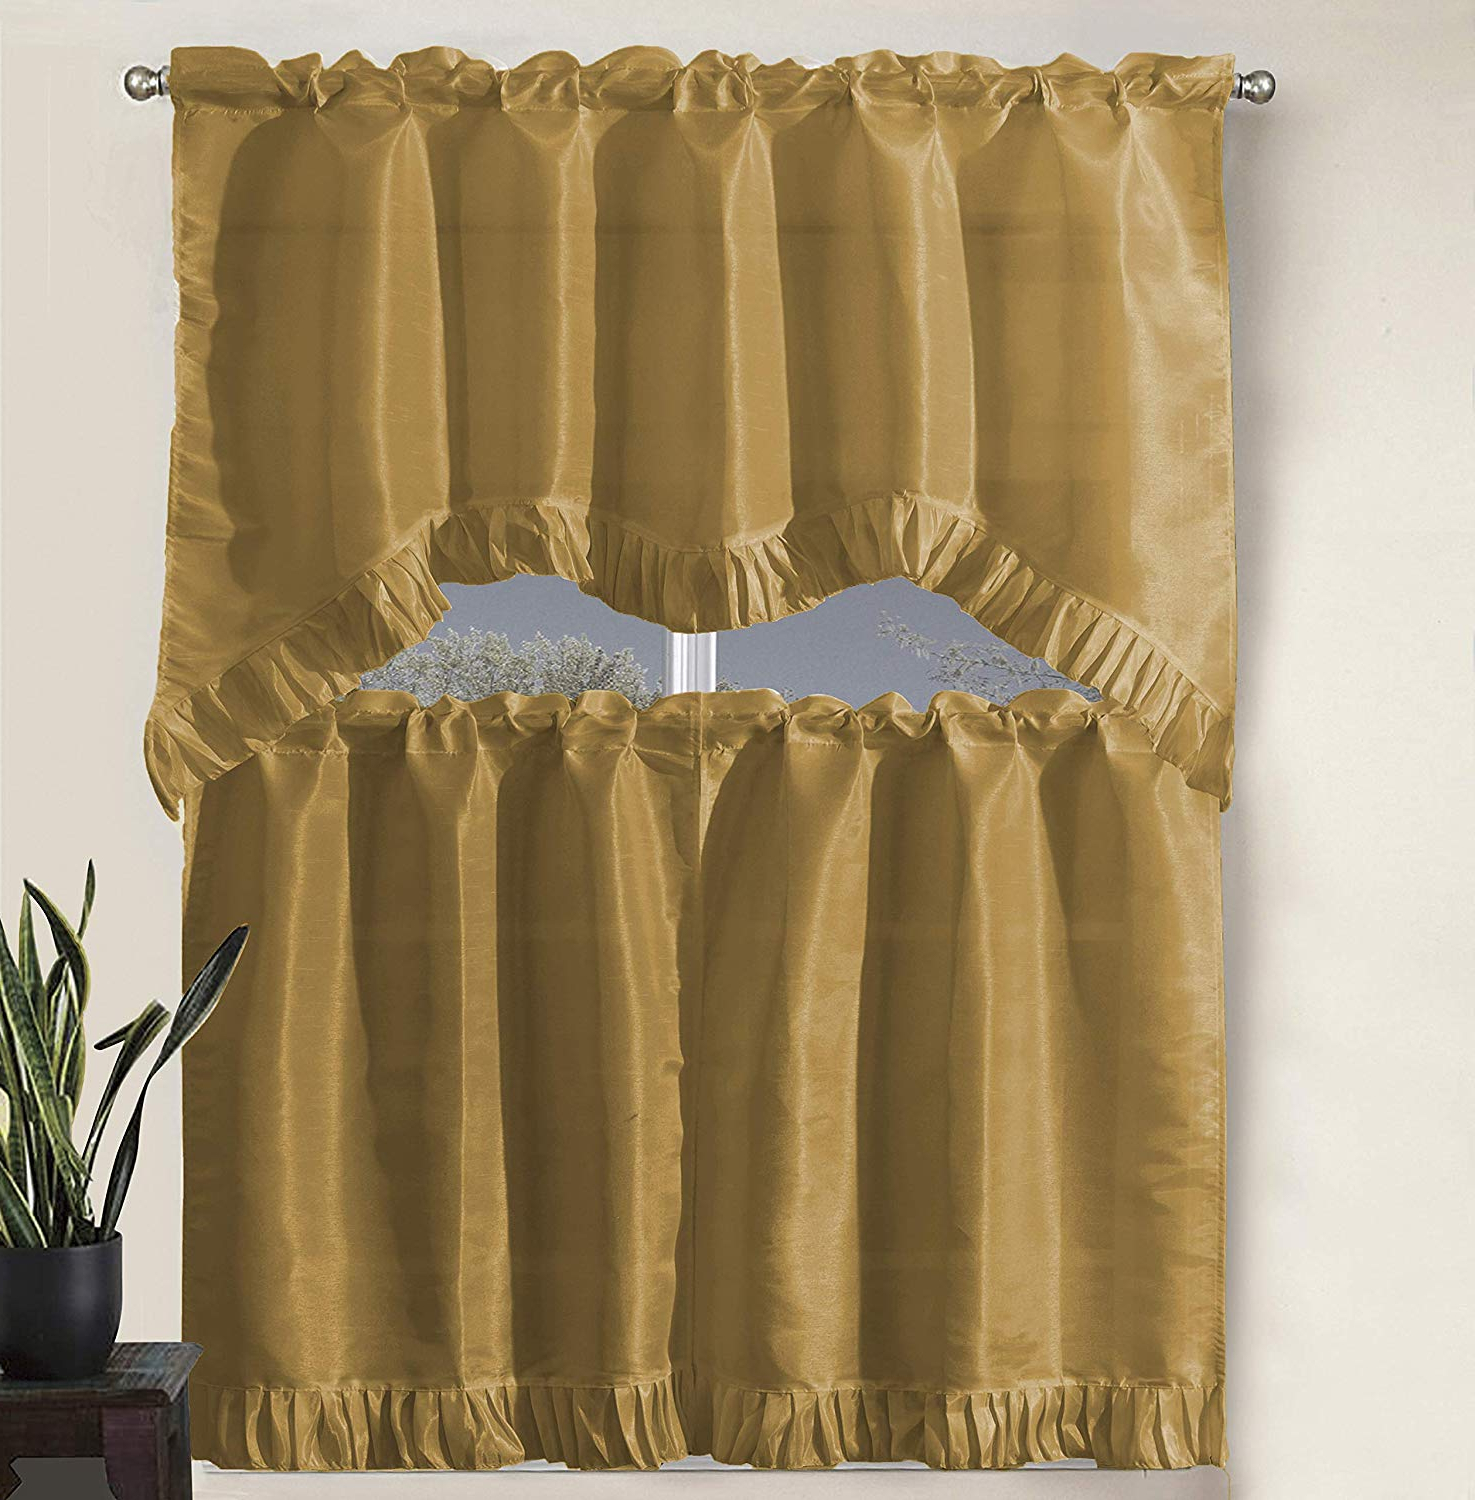 """2020 Faux Silk 3 Piece Kitchen Curtain Sets With Regard To Decotex 3 Piece Pleated Ruffles Faux Silk Solid Kitchen Window Treatment Curtain Set With Tiers And Valance (36"""" Tiers With Swag Valance, Gold) (View 18 of 20)"""